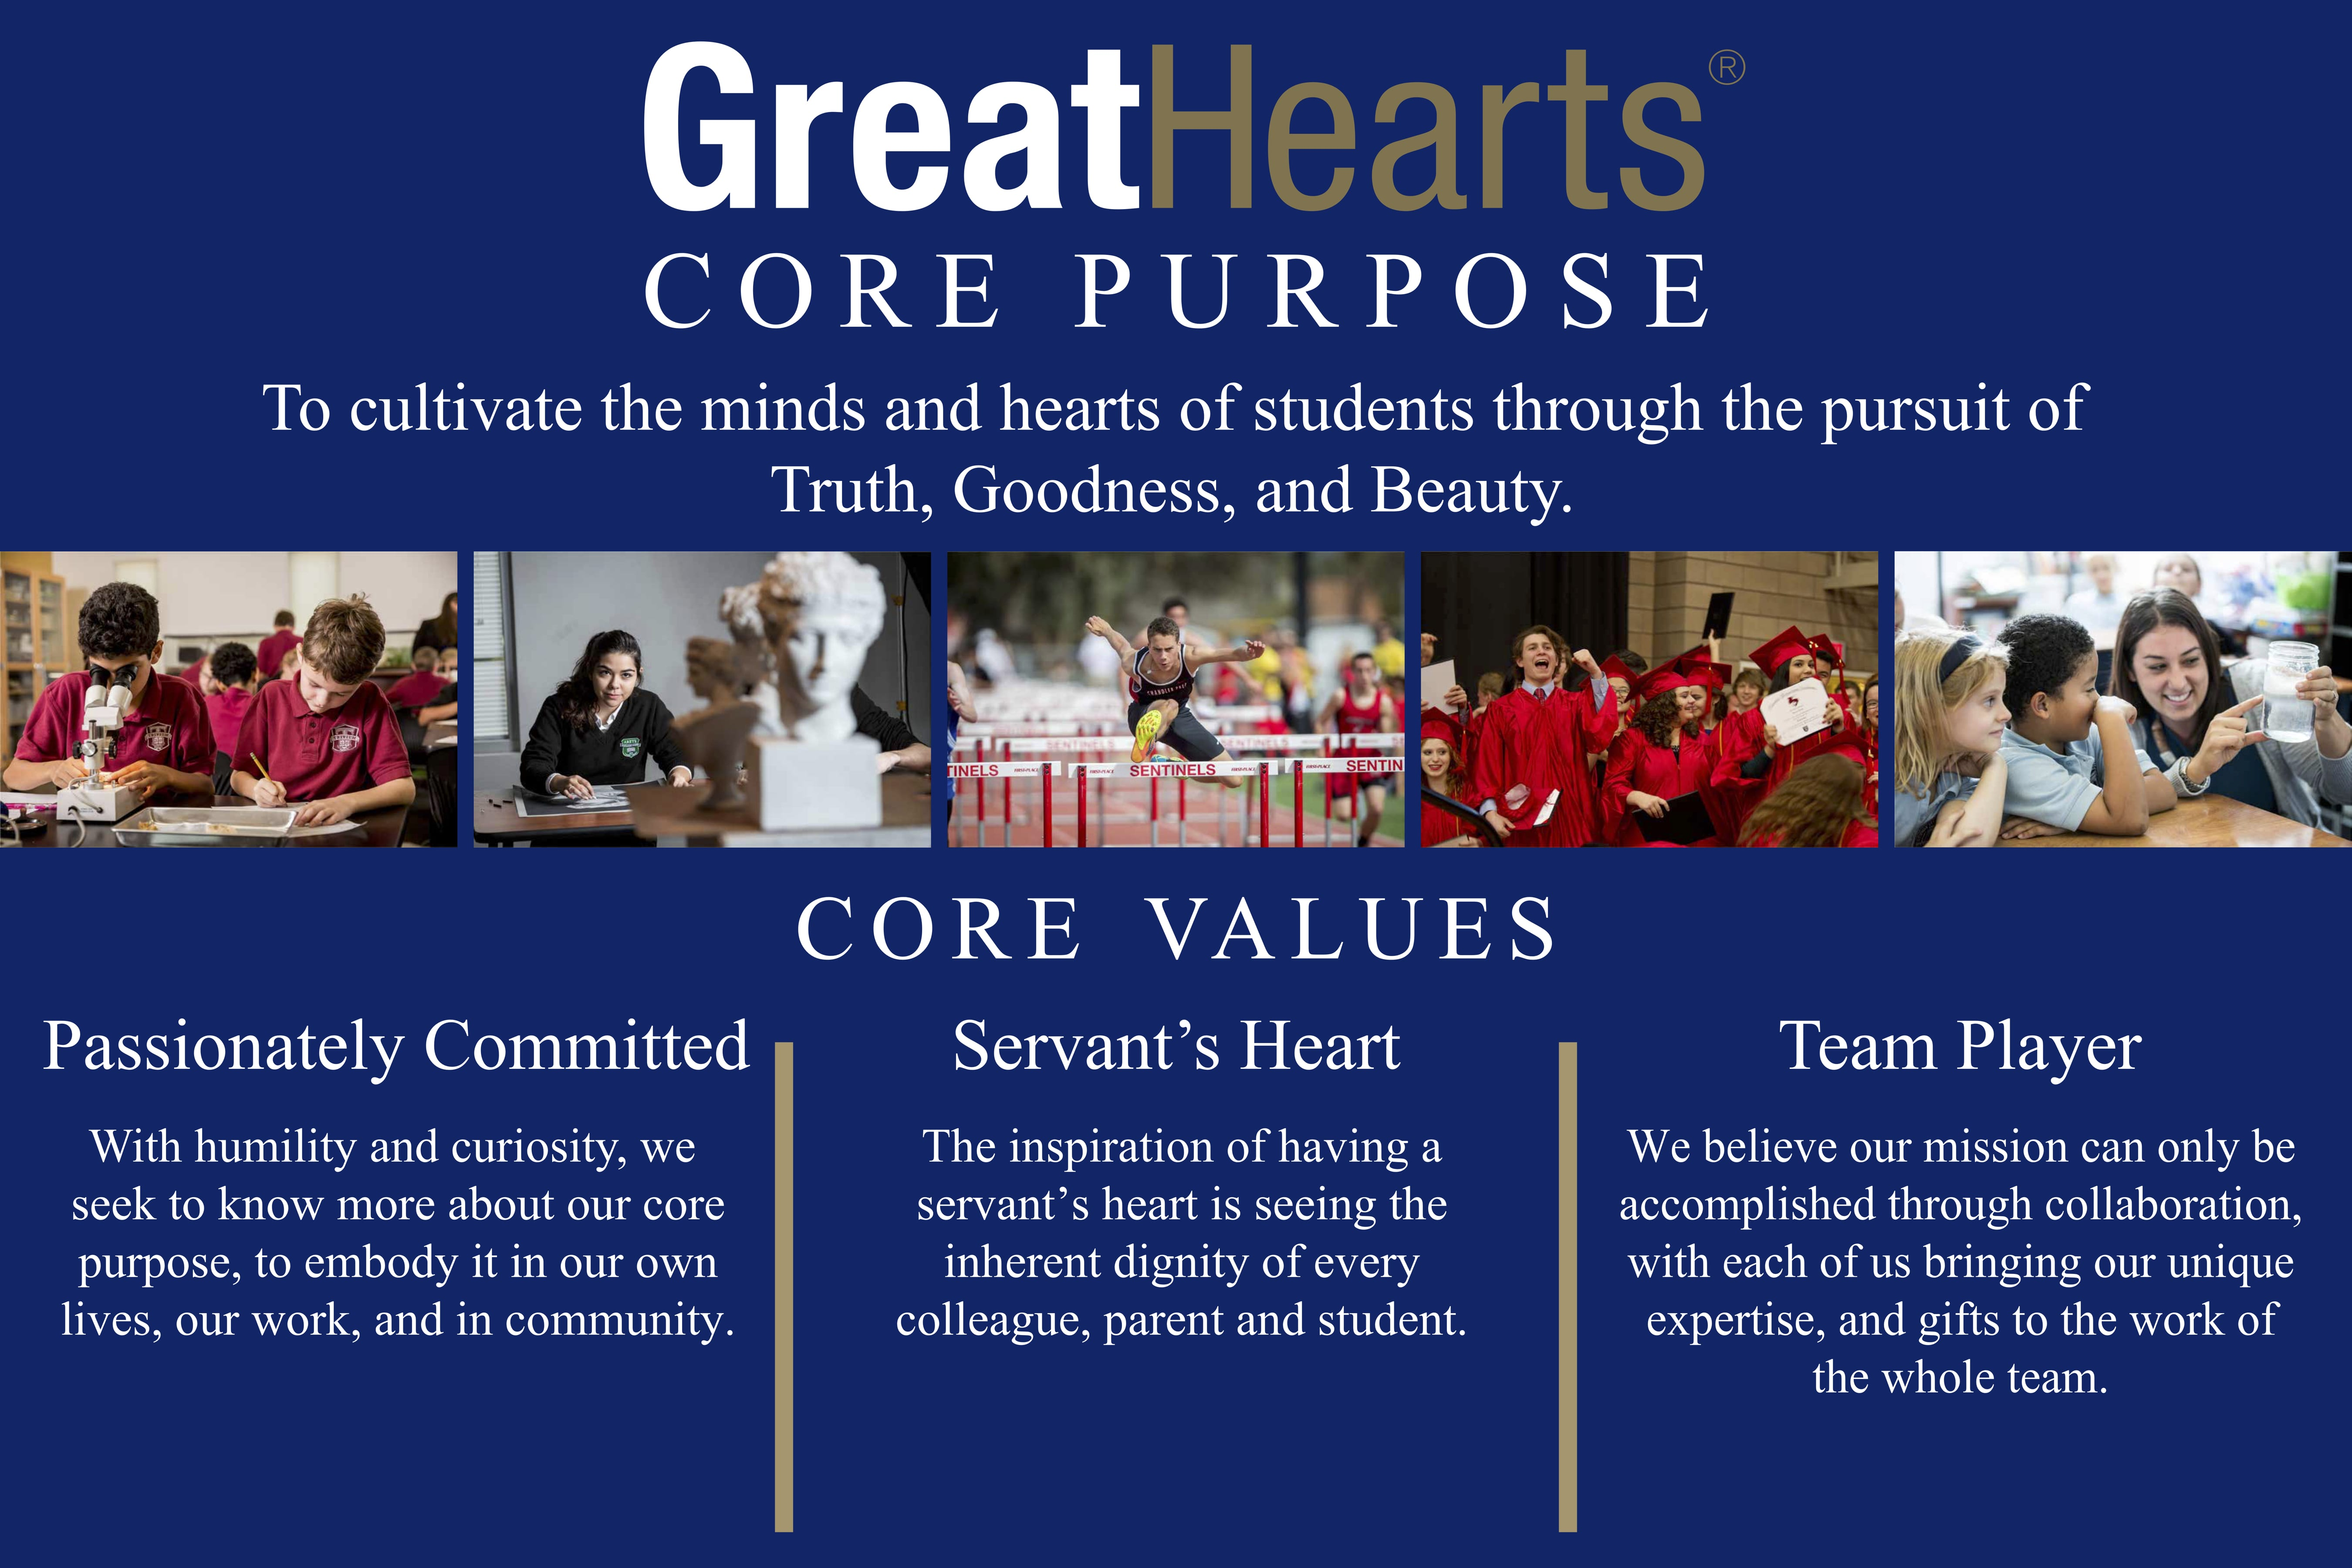 Great Hearts core purpose: to cultivate the minds and hearts of students through the pursuit of truth, goodness, and beauty